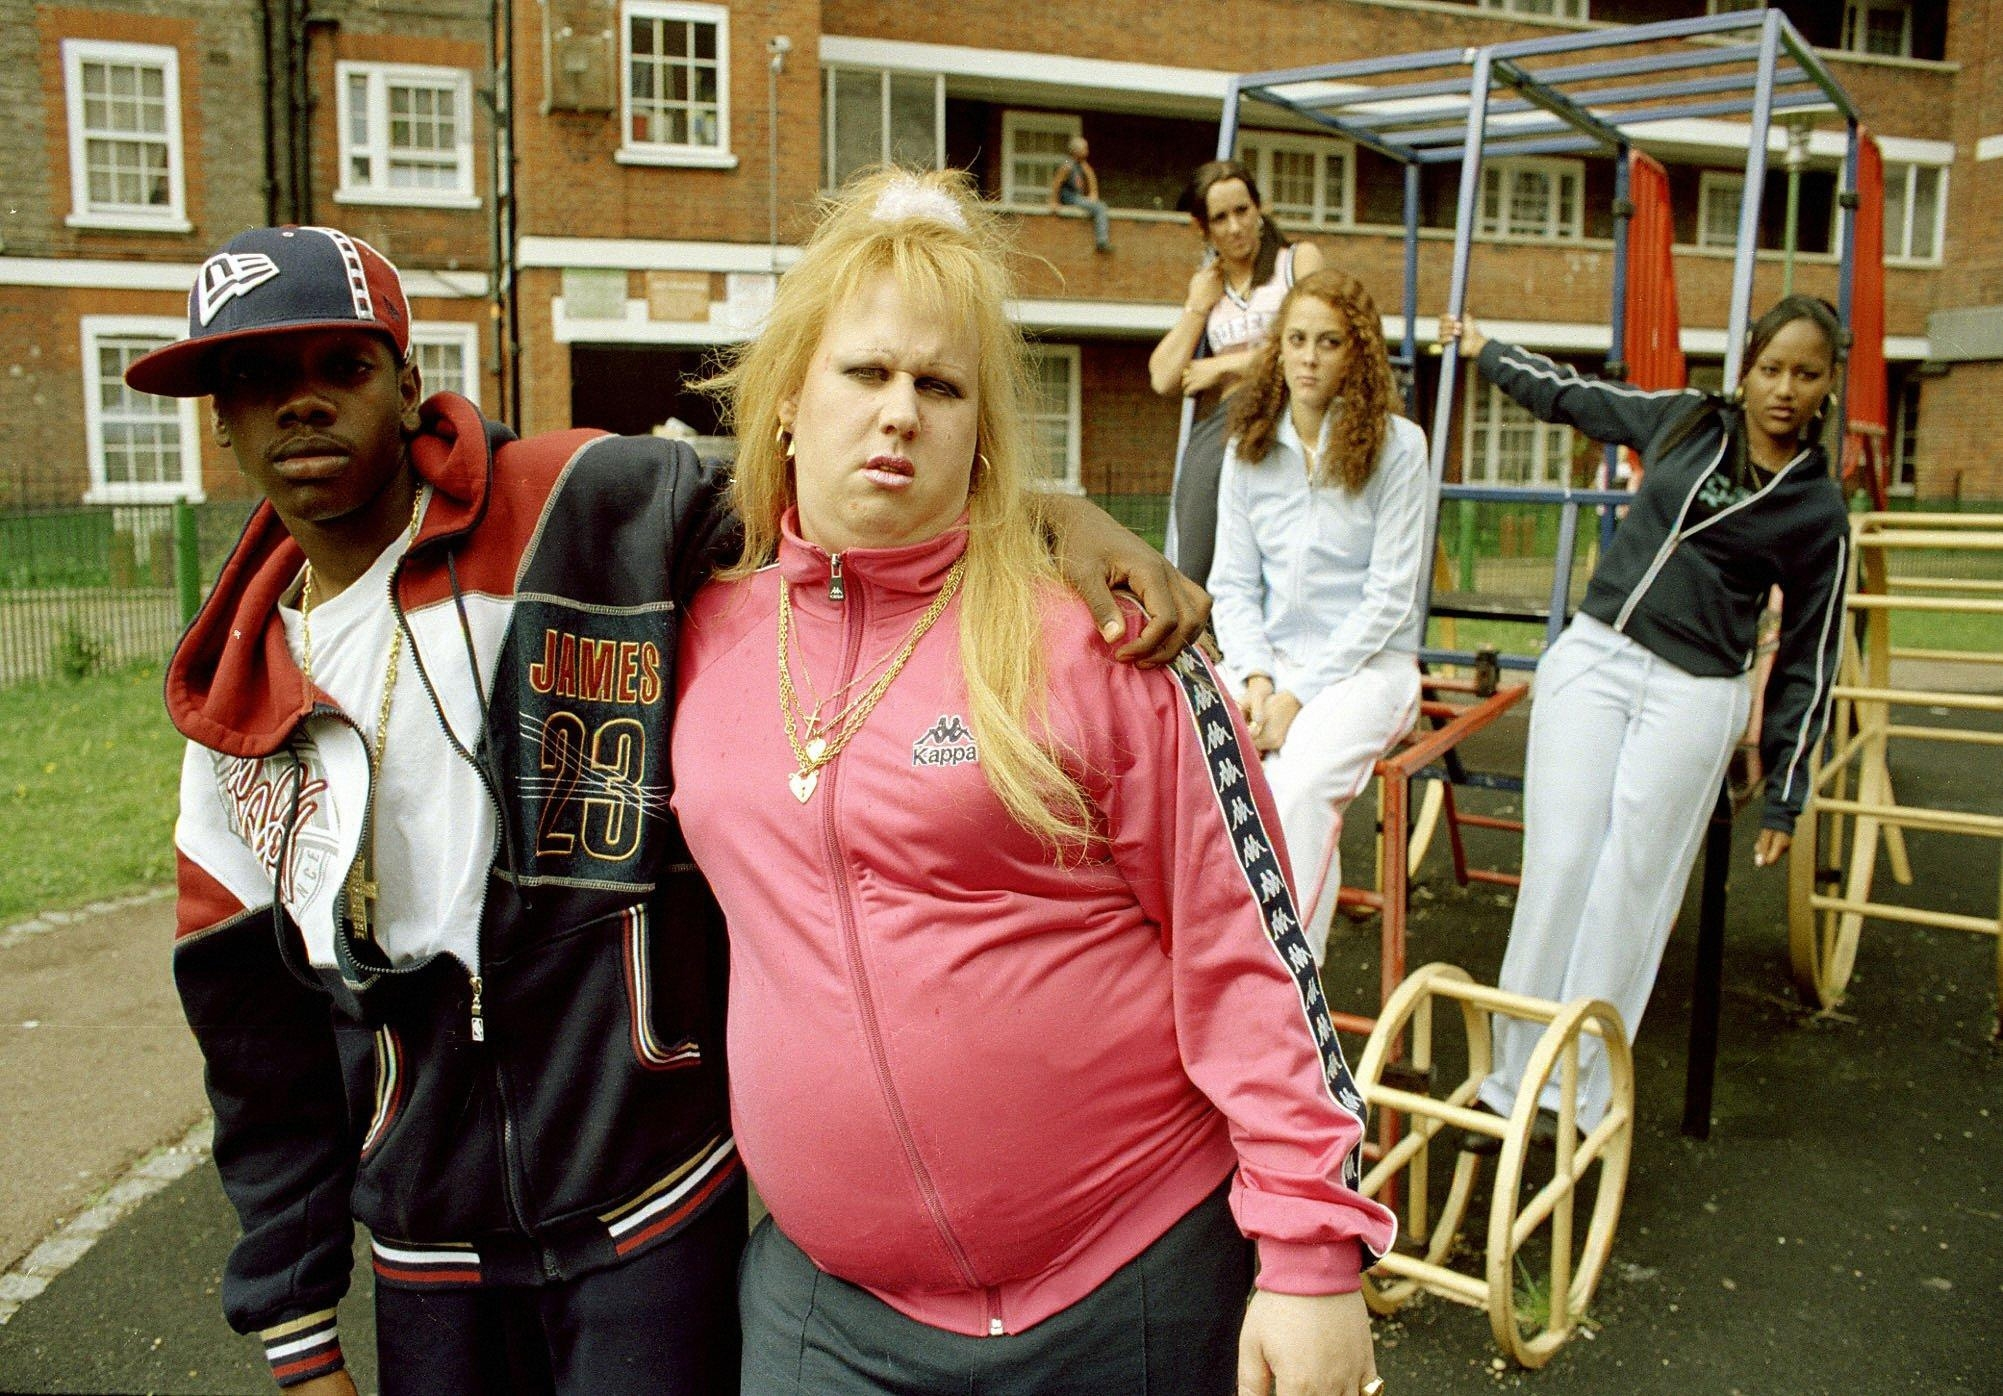 Southampton scientists are part of a new study which could explain more about teenage behaviour such as Little Britain character Vicky Pollard, pictured